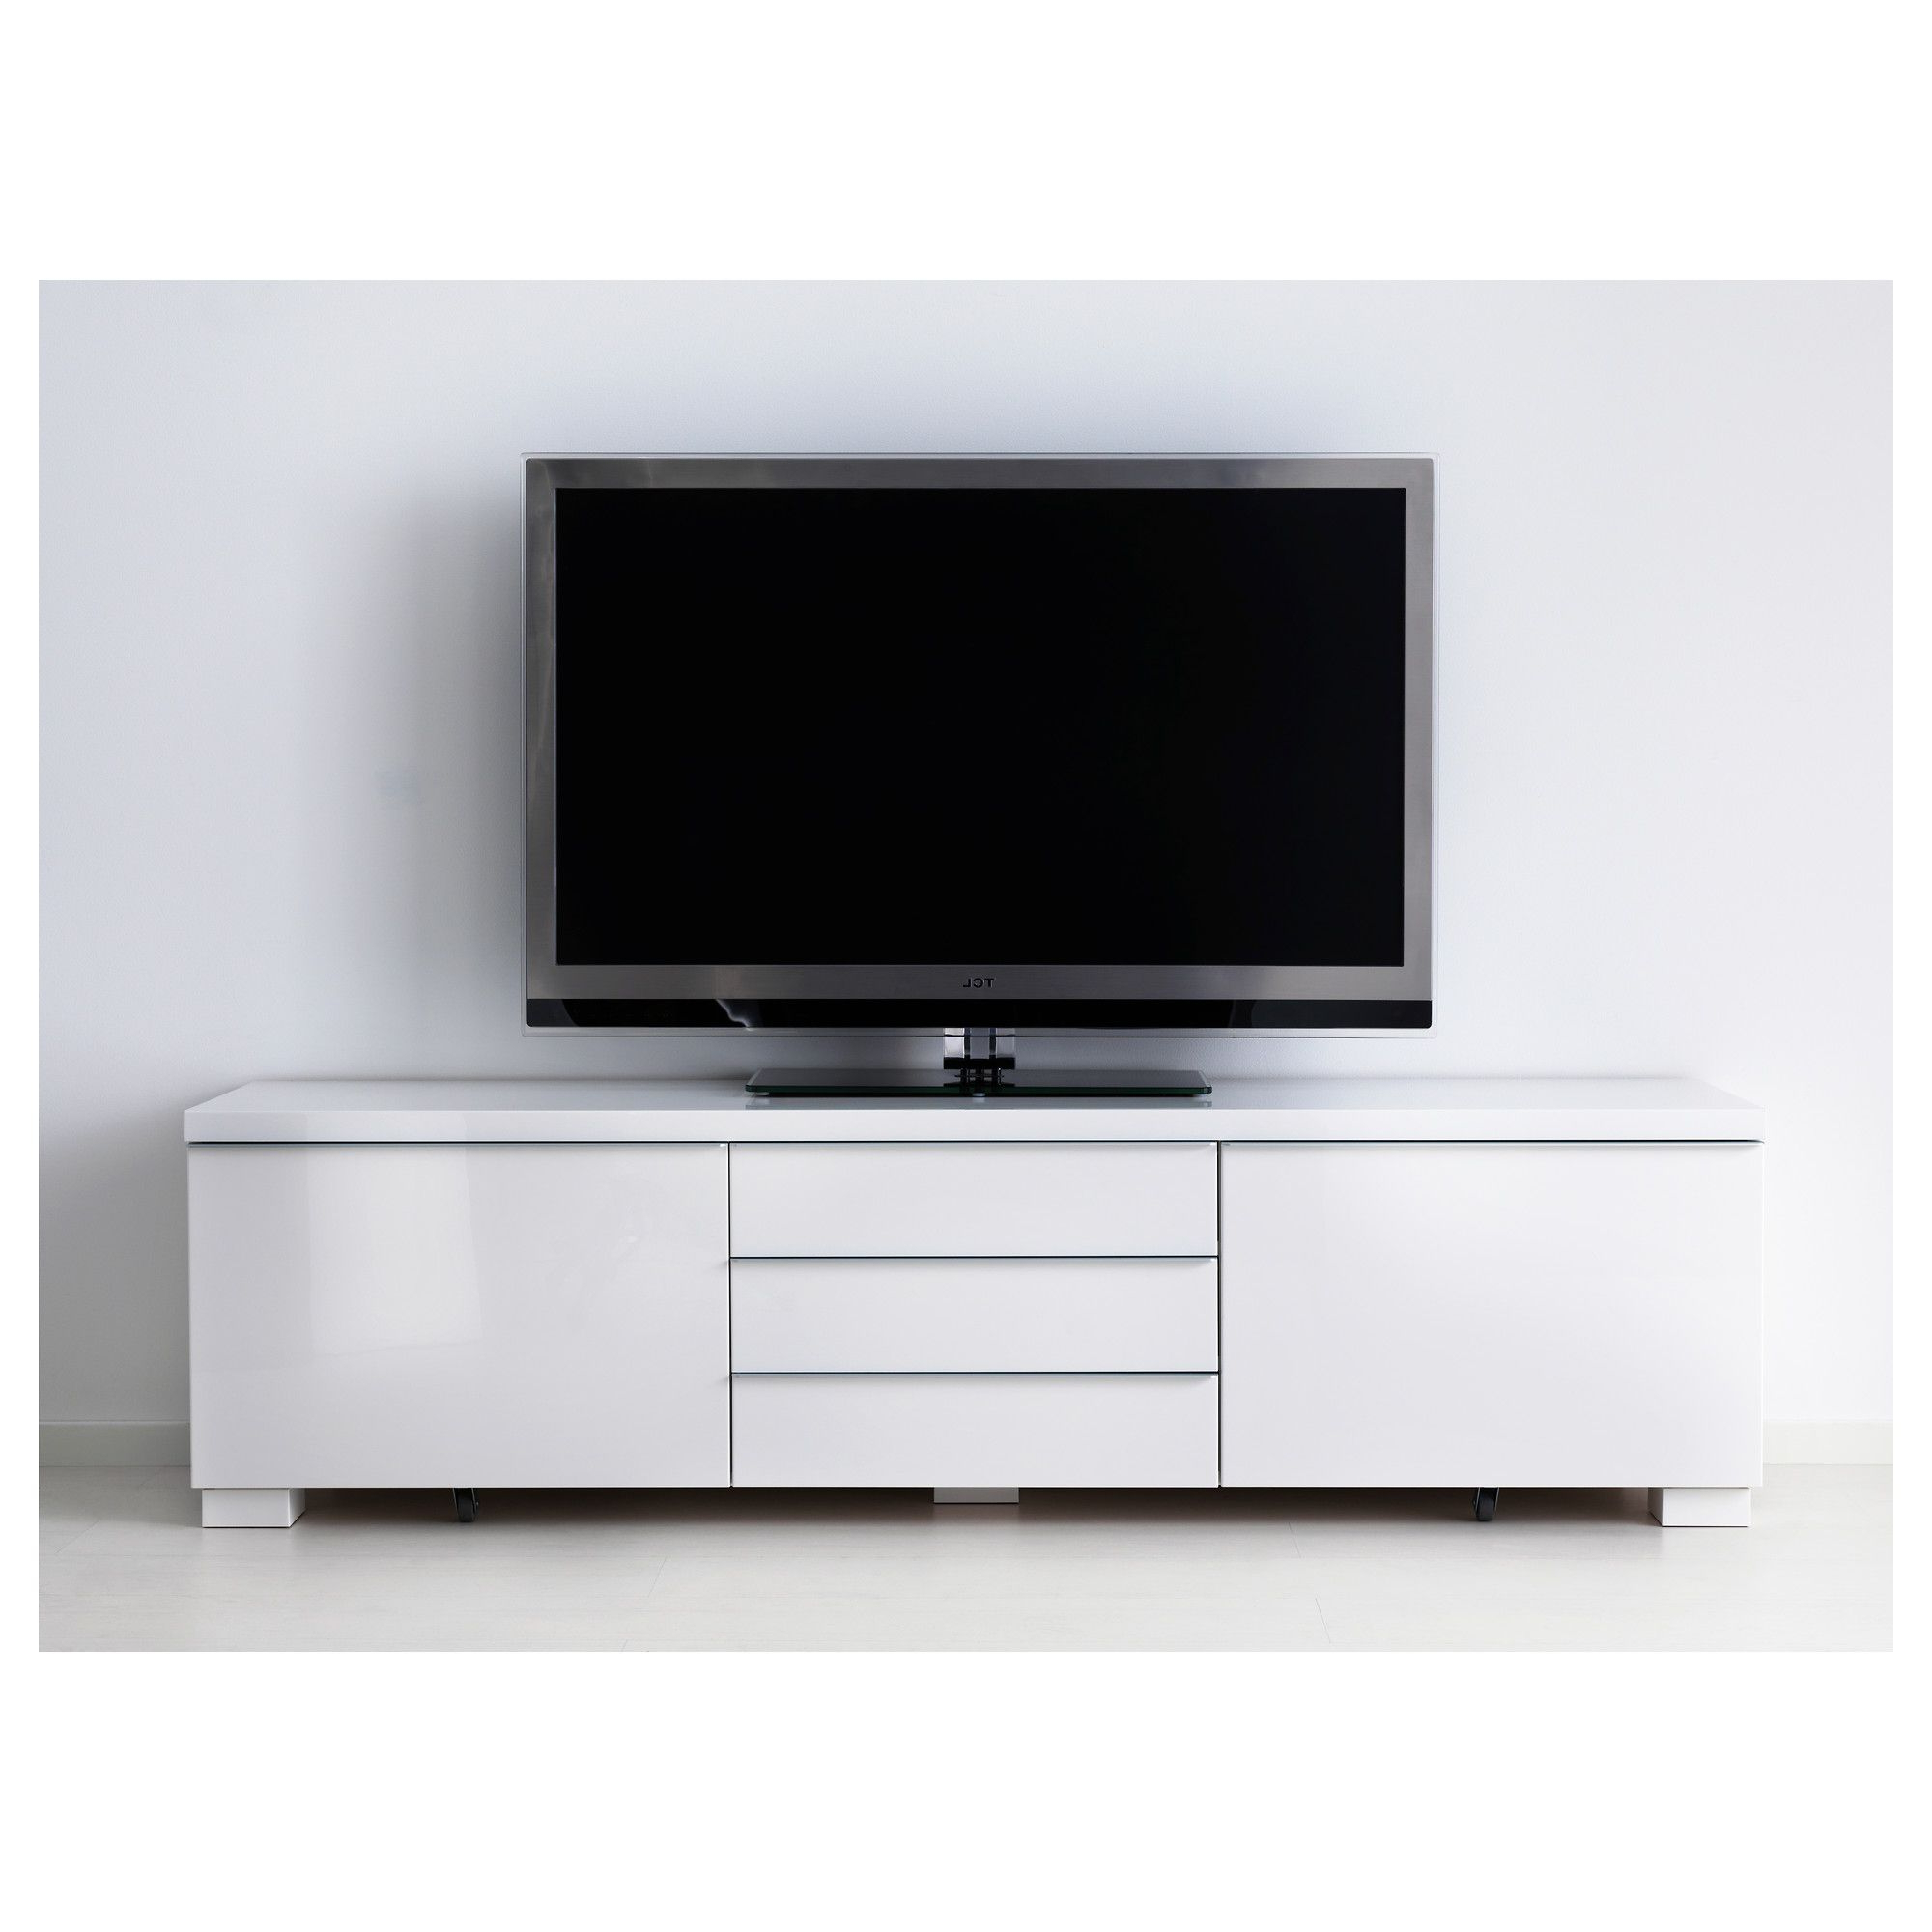 Home Pertaining To Current Ikea White Gloss Tv Units (View 3 of 20)